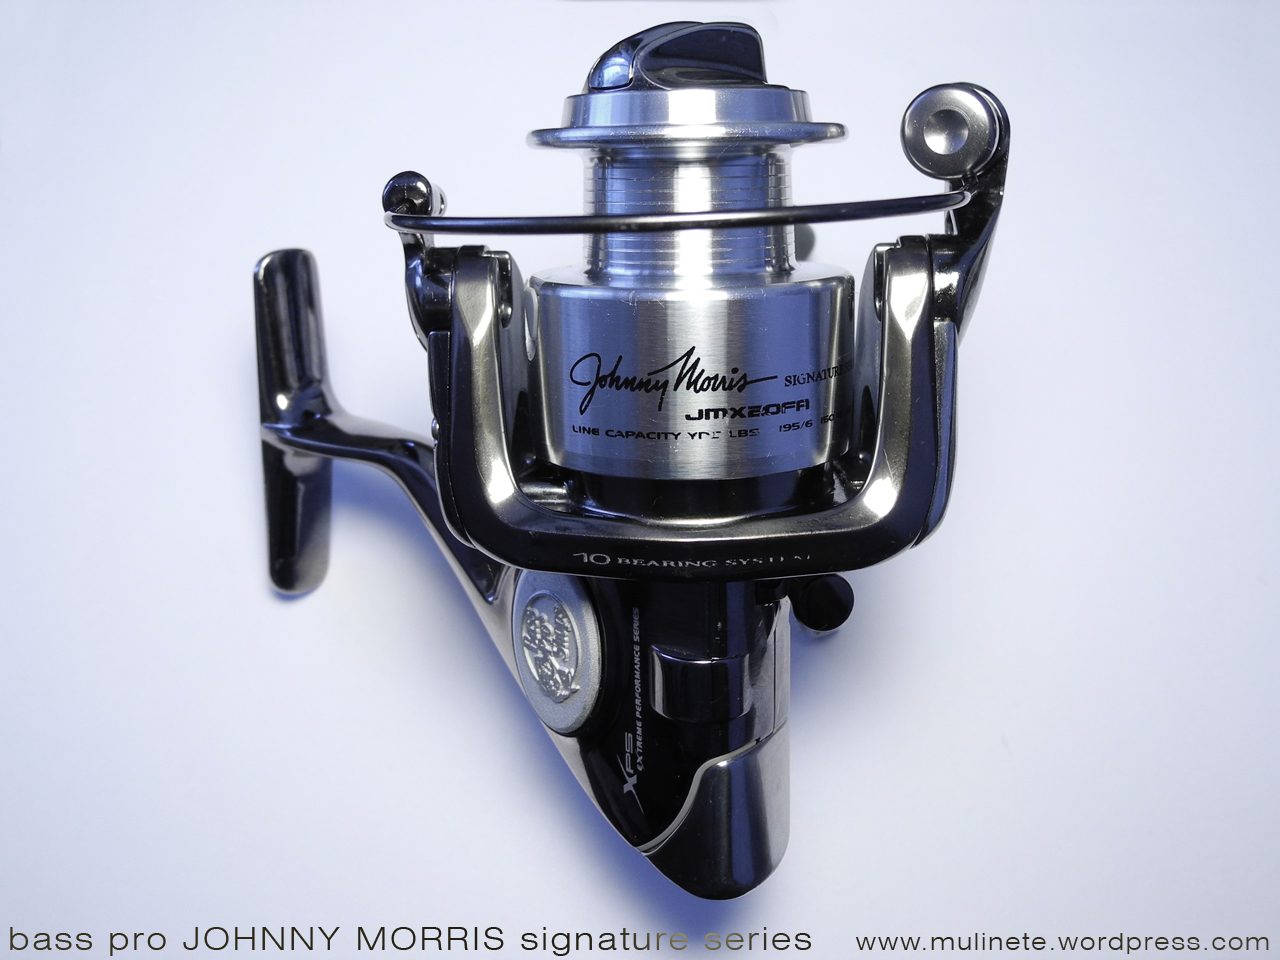 bass_pro_johnny_morris_signature_01.jpg